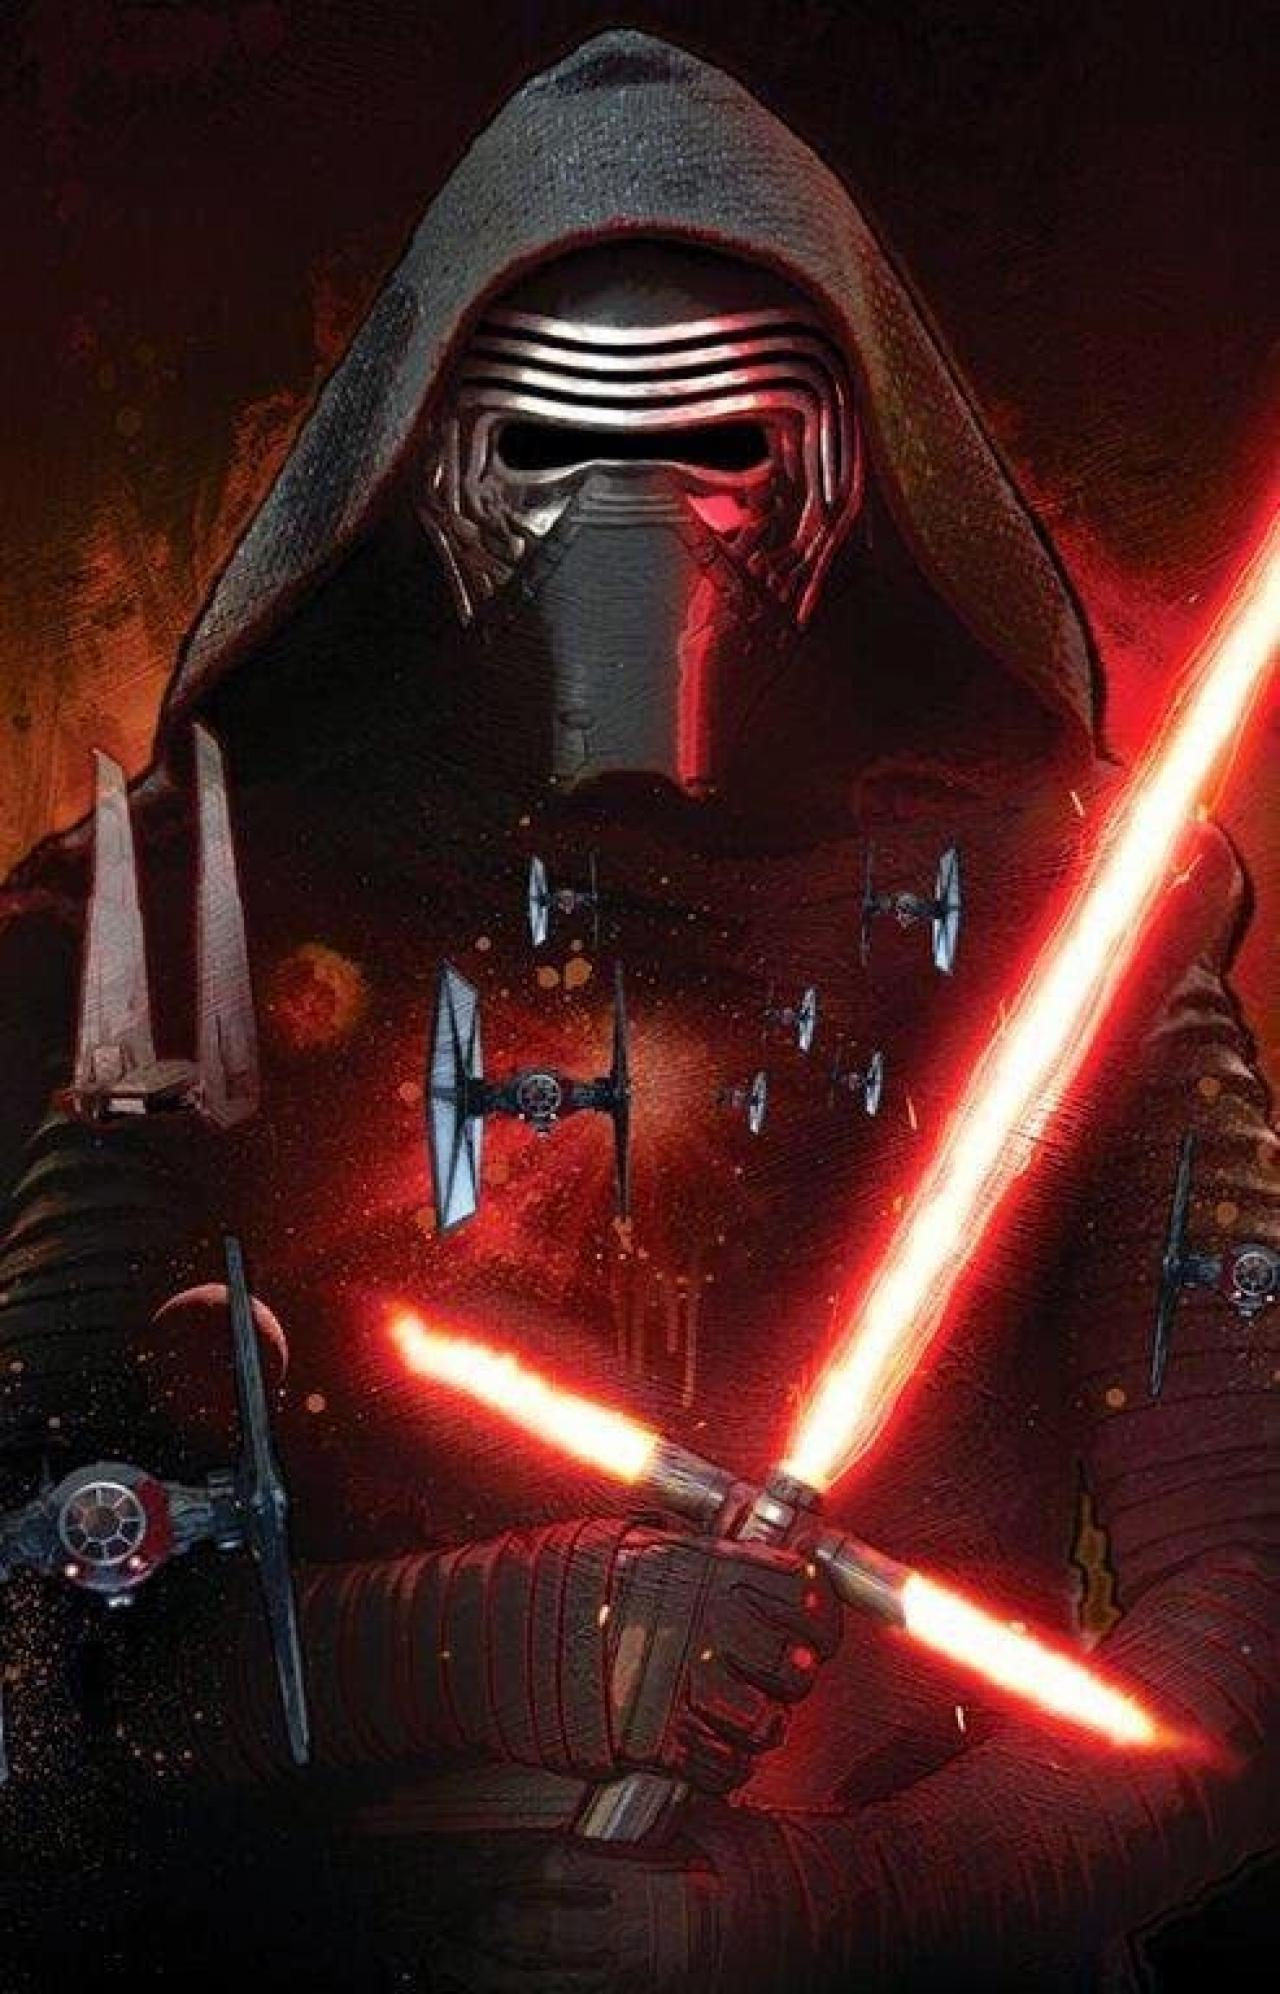 What is the name of Kylo Ren before he turned to the dark side? (first and last name!)